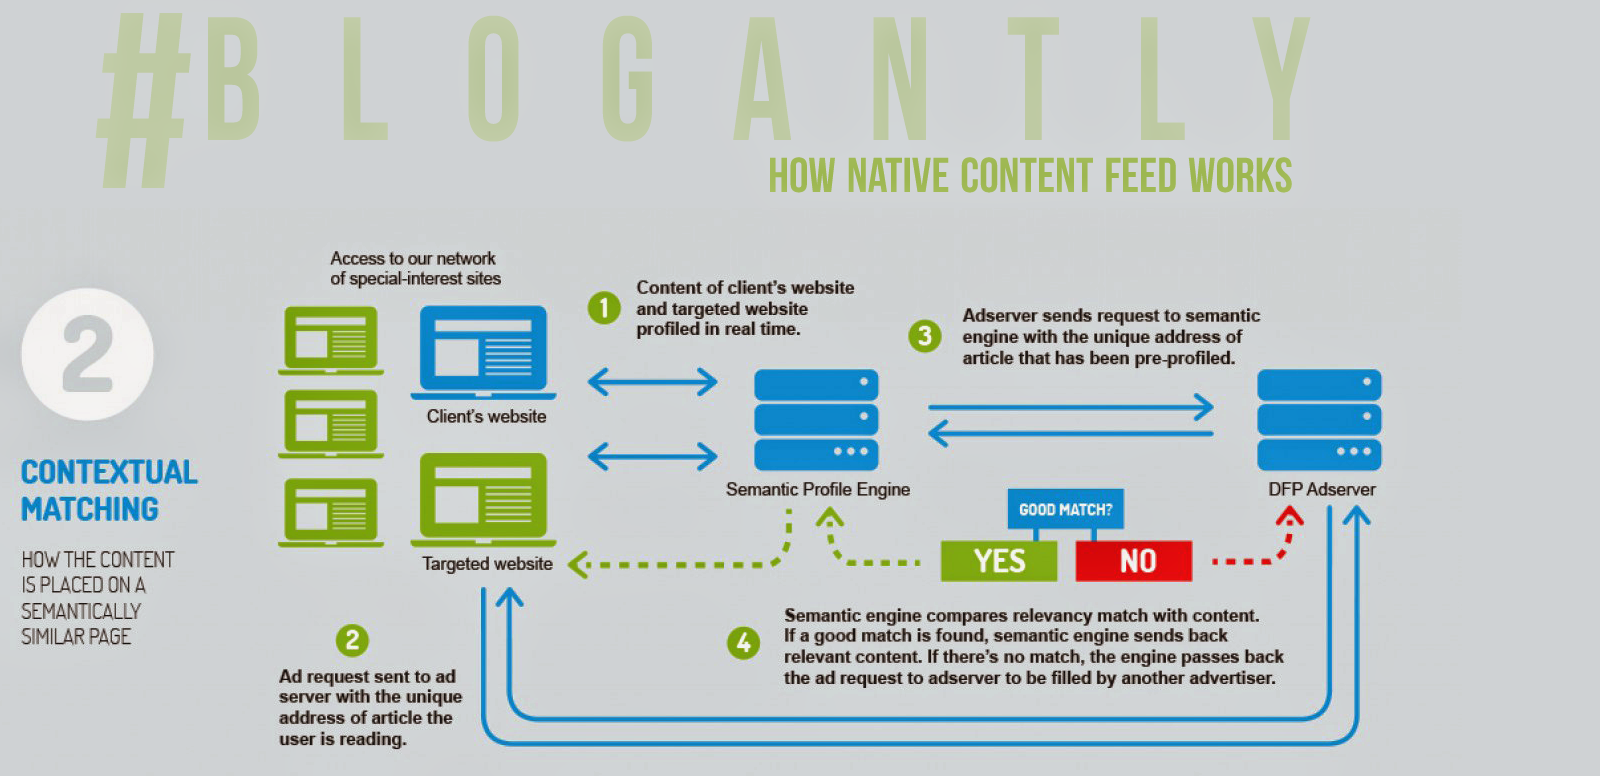 @blogantly via #blogantly // How native content feed works Part 2 // http://goo.gl/MochNd on #NativeAdvertising